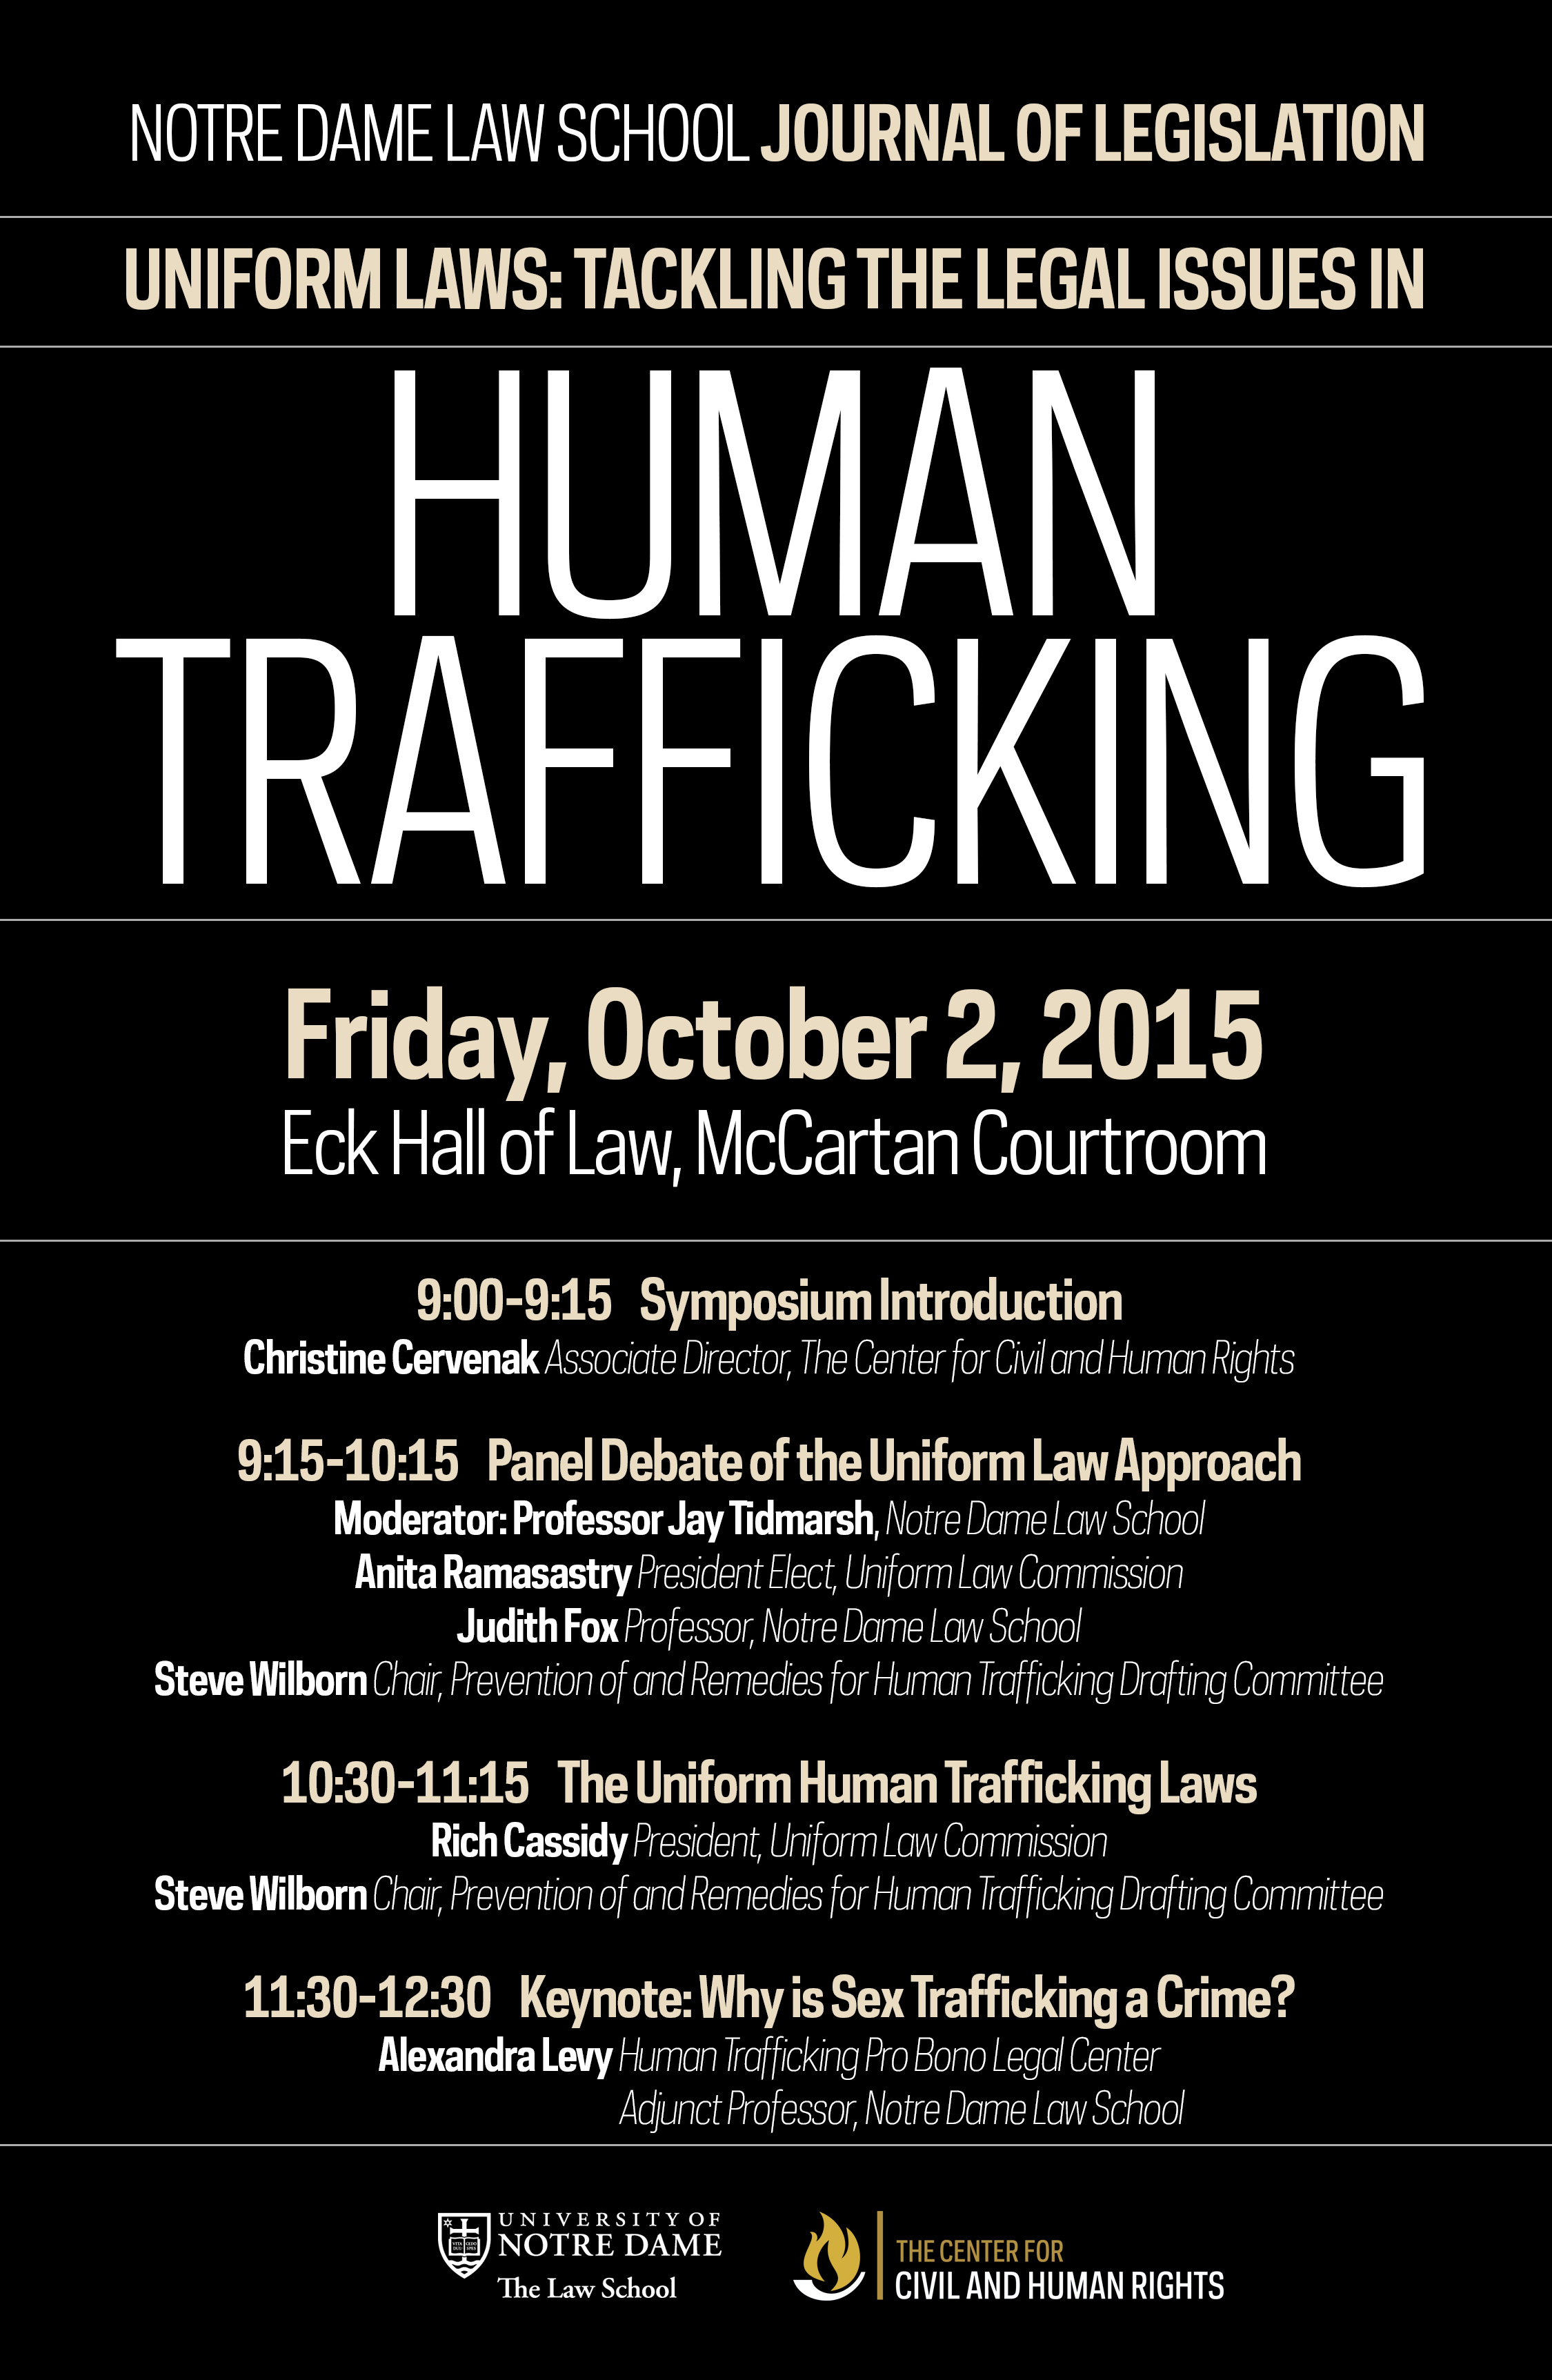 2015 - Uniform Laws:Tackling the Legal Issues in Human Trafficking